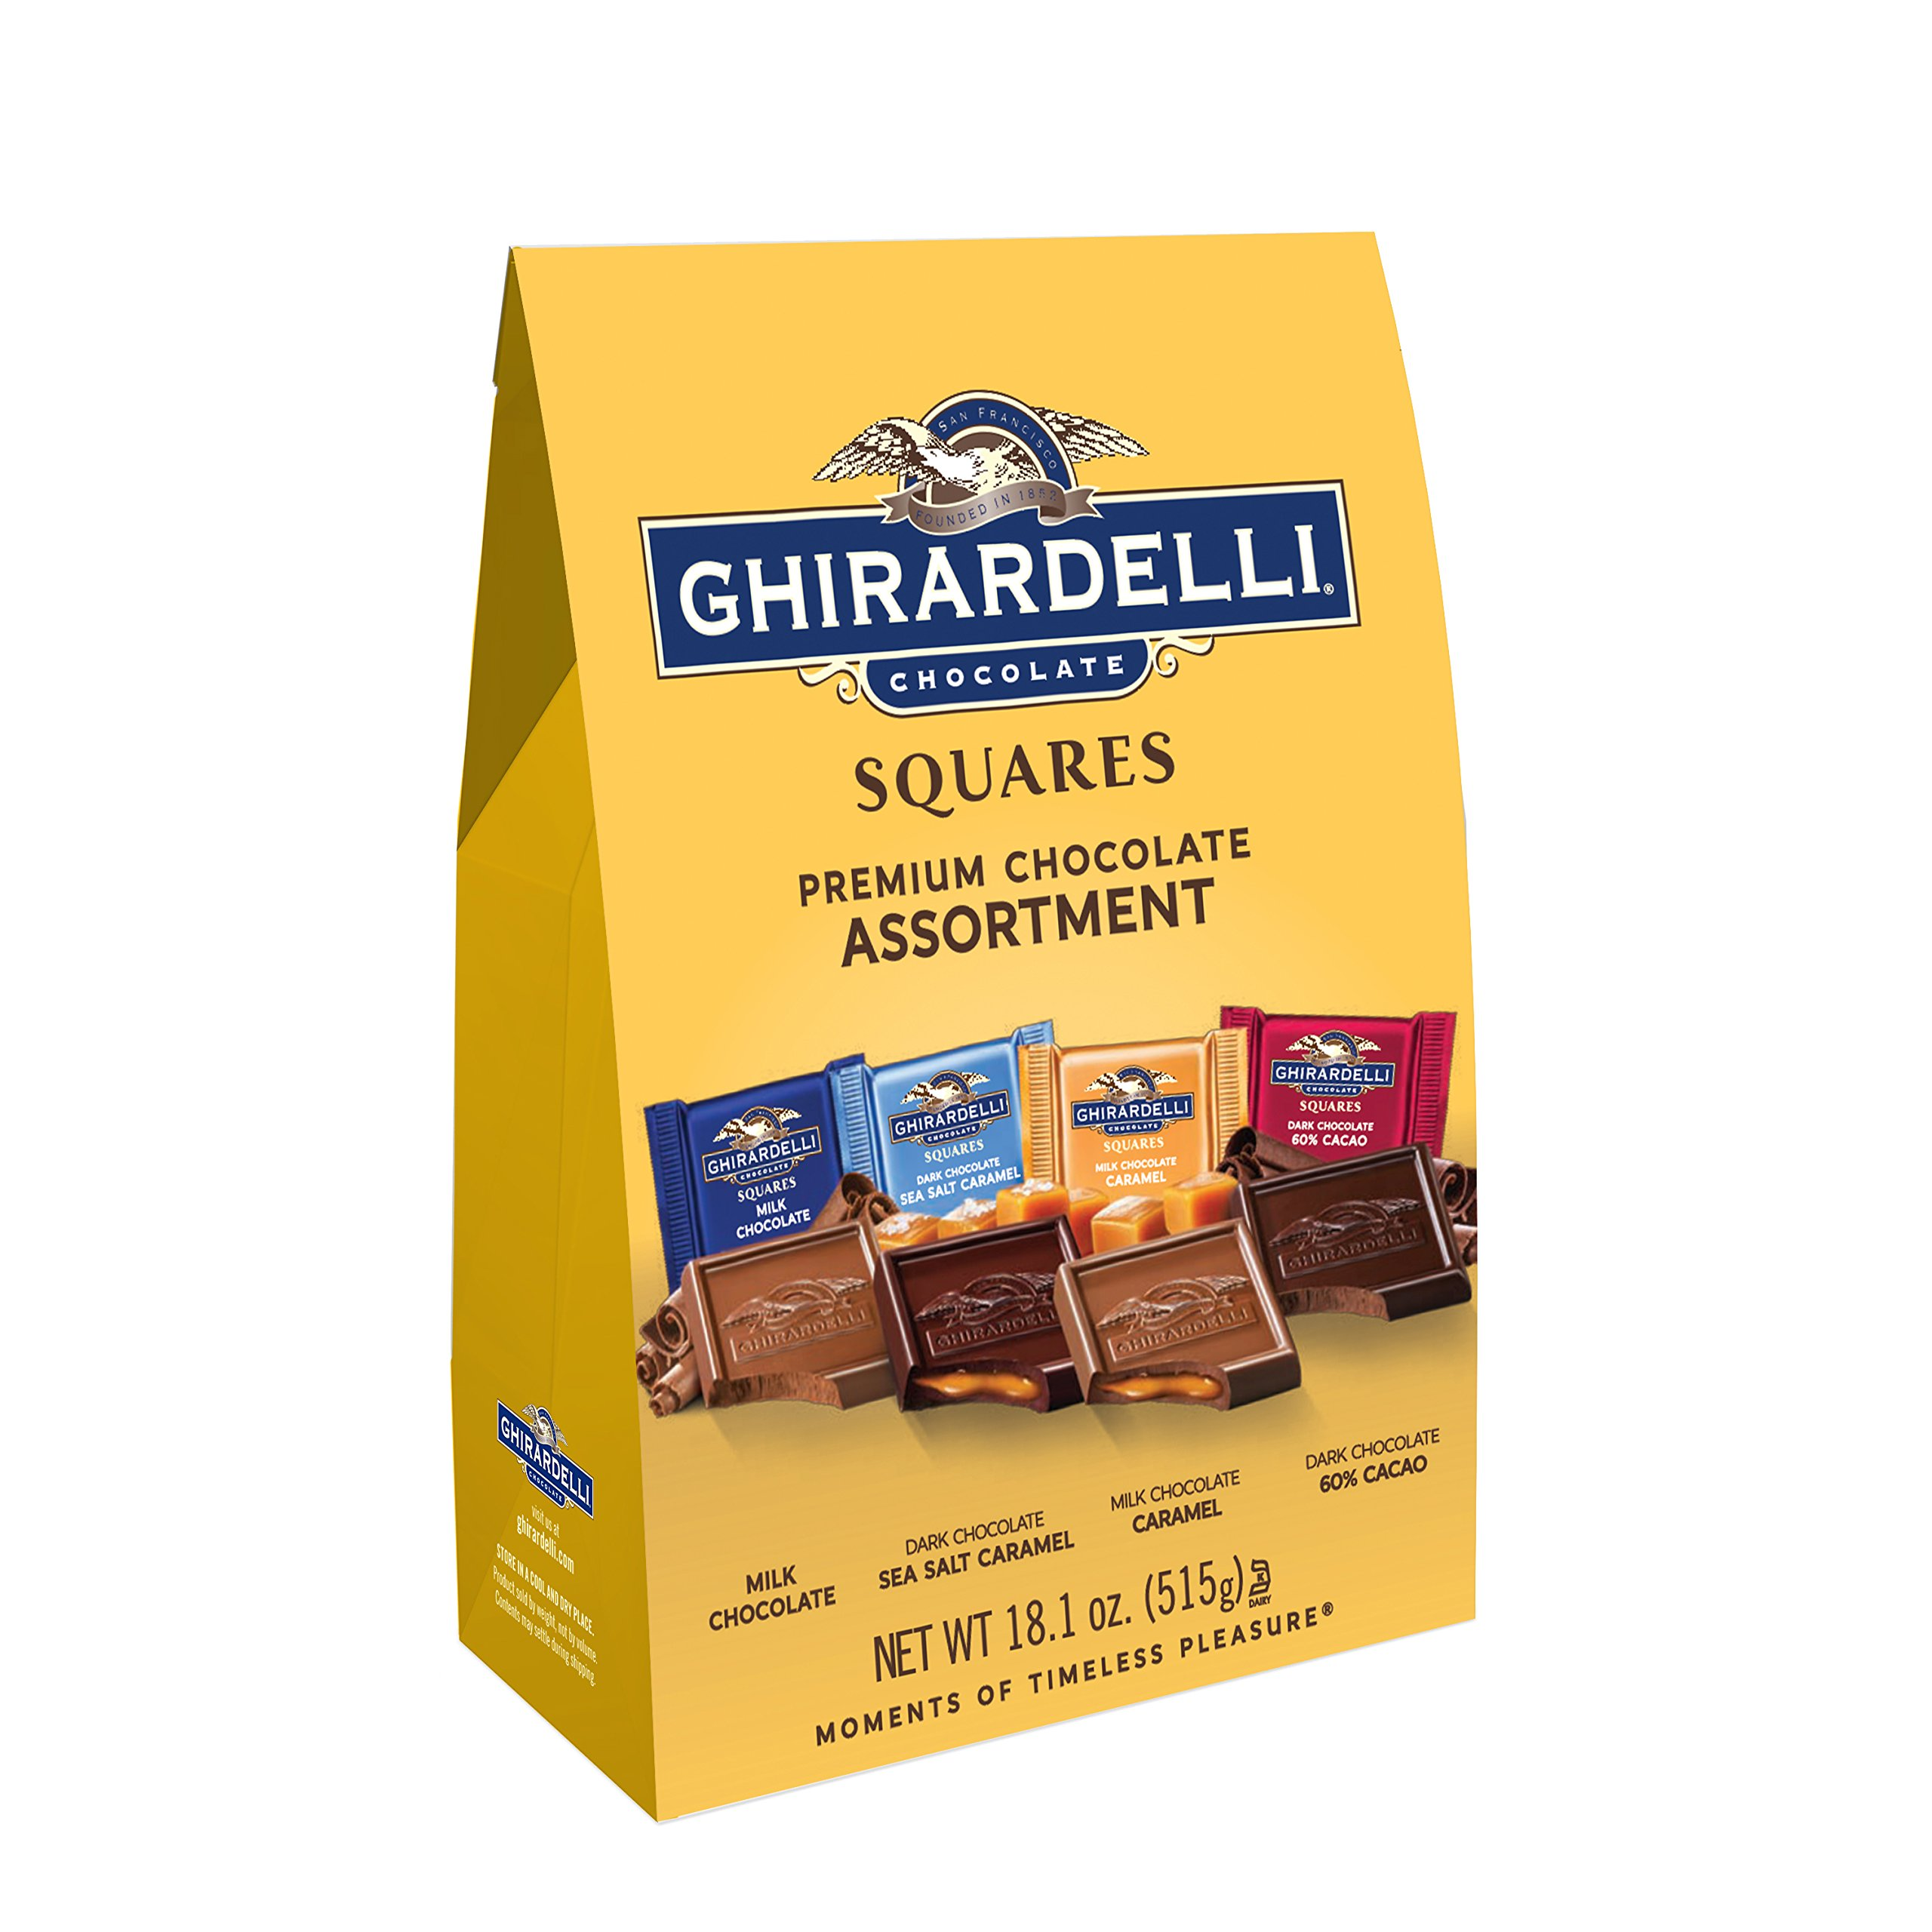 Ghirardelli Squares Premium Chocolate Assortment, 18.1 oz